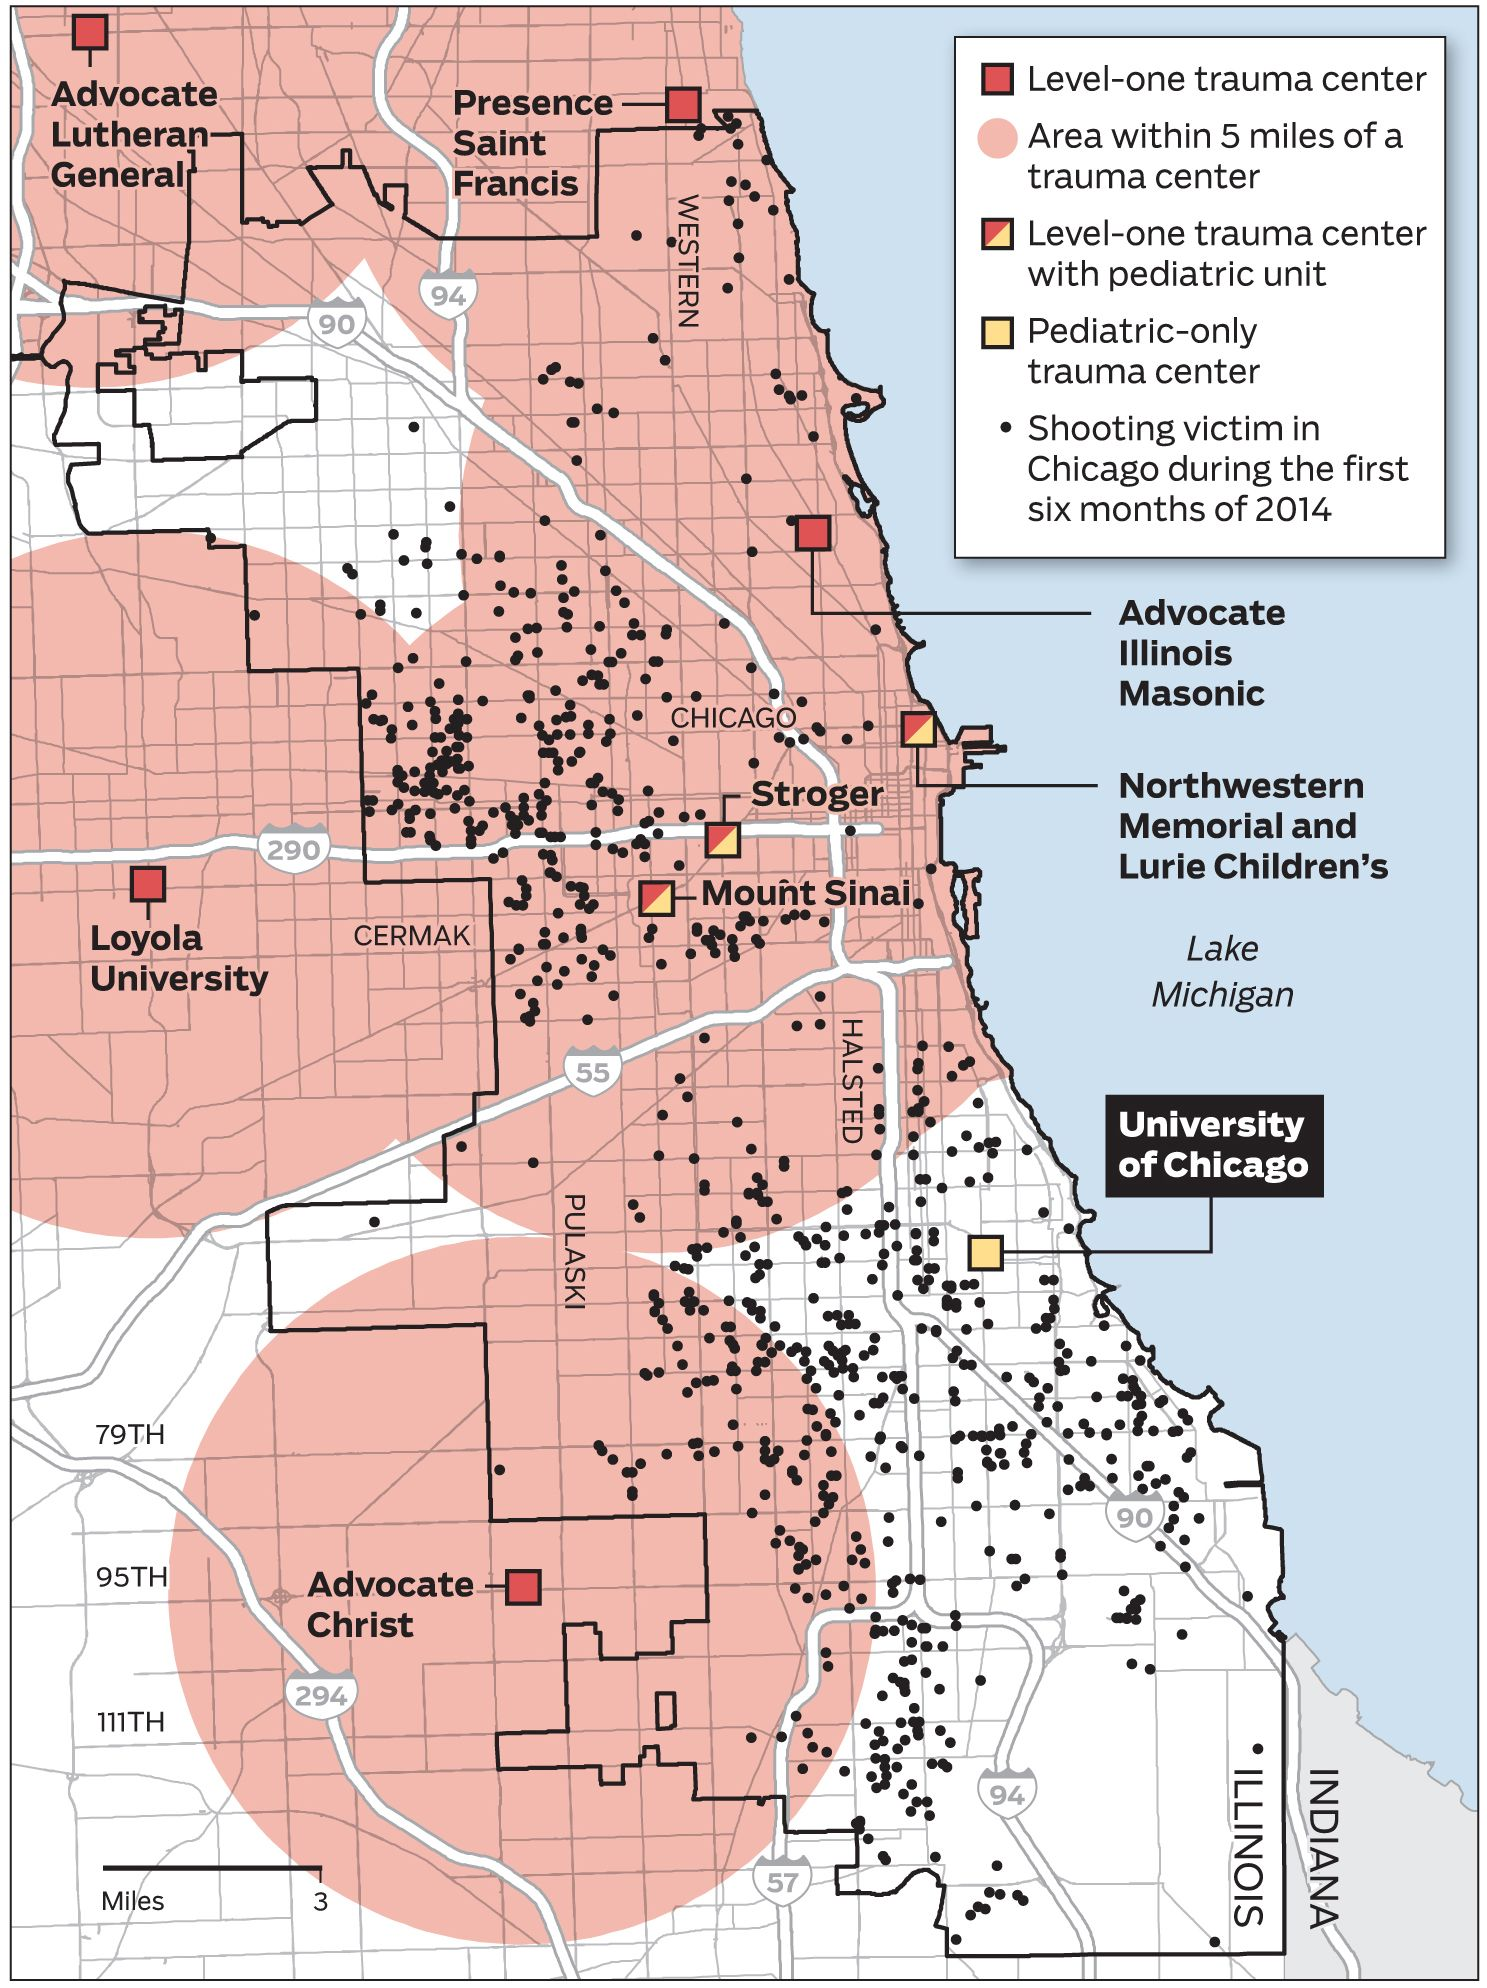 Map: Trauma centers and shootings in the Chicago area ... on people map, chicago murder map, chicago area map, chicago street map with numbers, chicago highway map with names, english map, goose island chicago map, chicago ward map, chicago indianapolis map, google map, chicago cubs map, the state map, chicago crime map, chicago suburban map, chicago united states map, chicago road map, chicago aurora map, chicago texas map, ap map, chicago bay map,